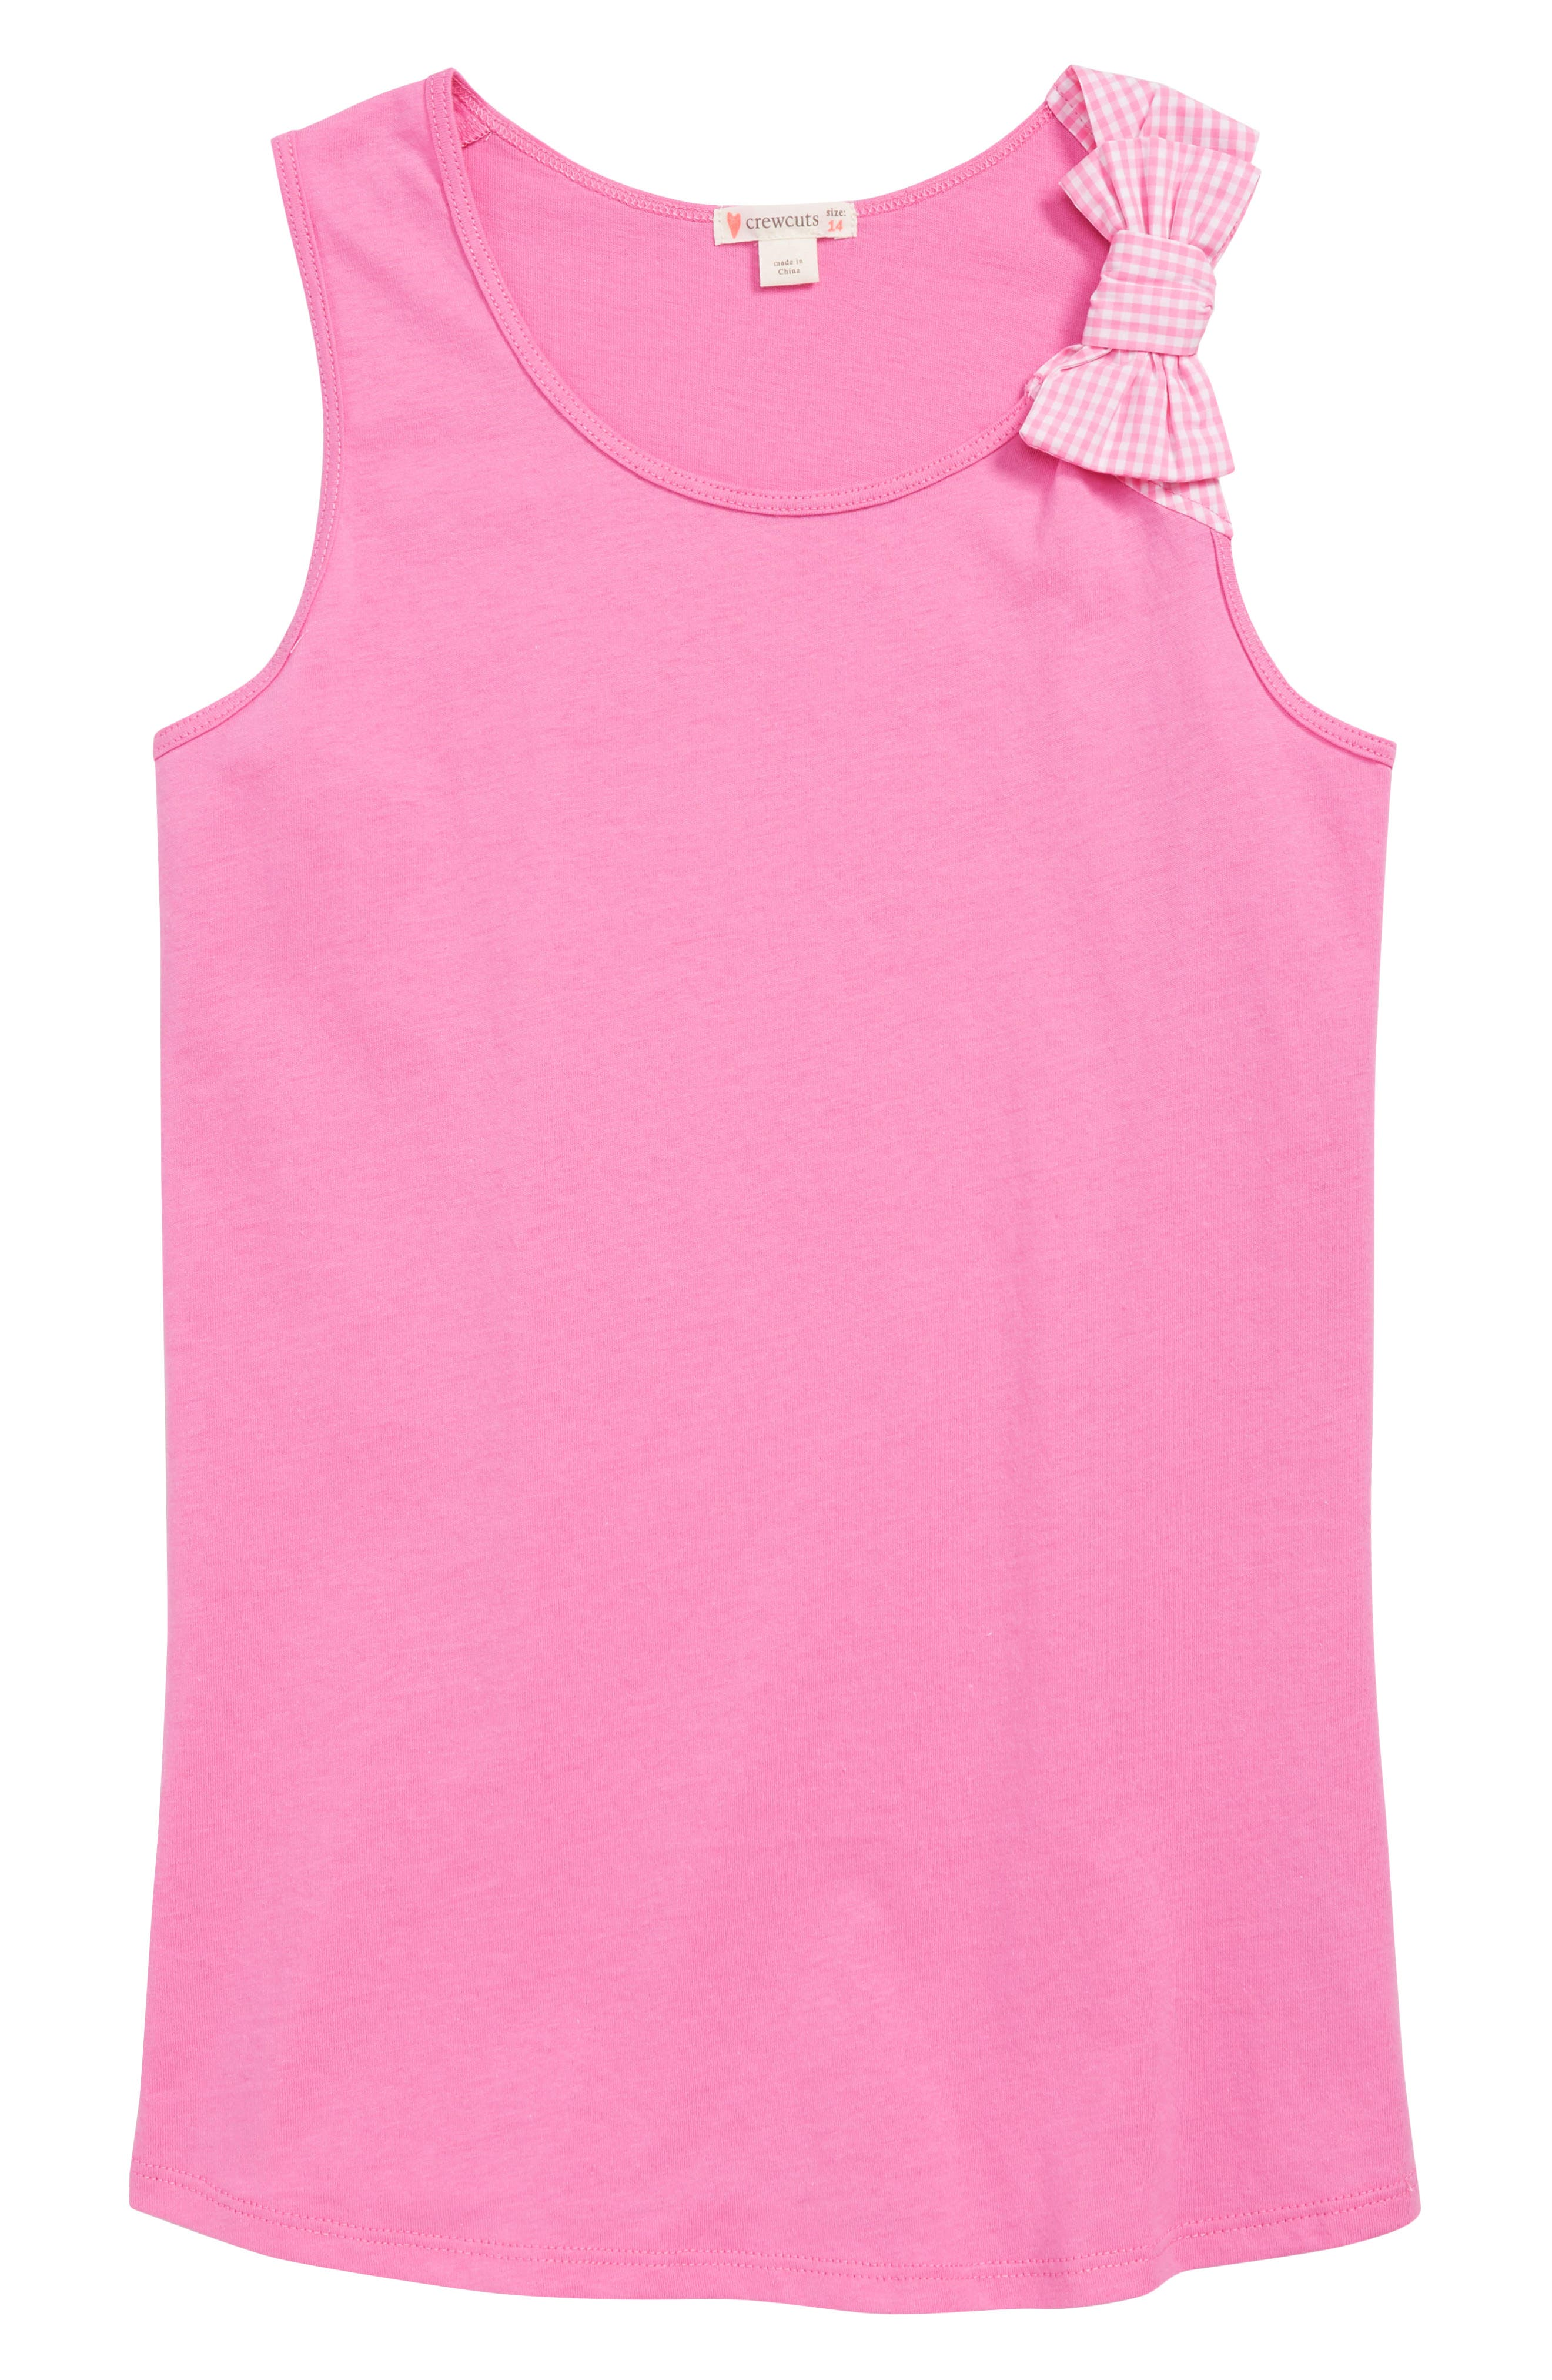 CREWCUTS BY J.CREW Bow Tank Top, Main, color, 653